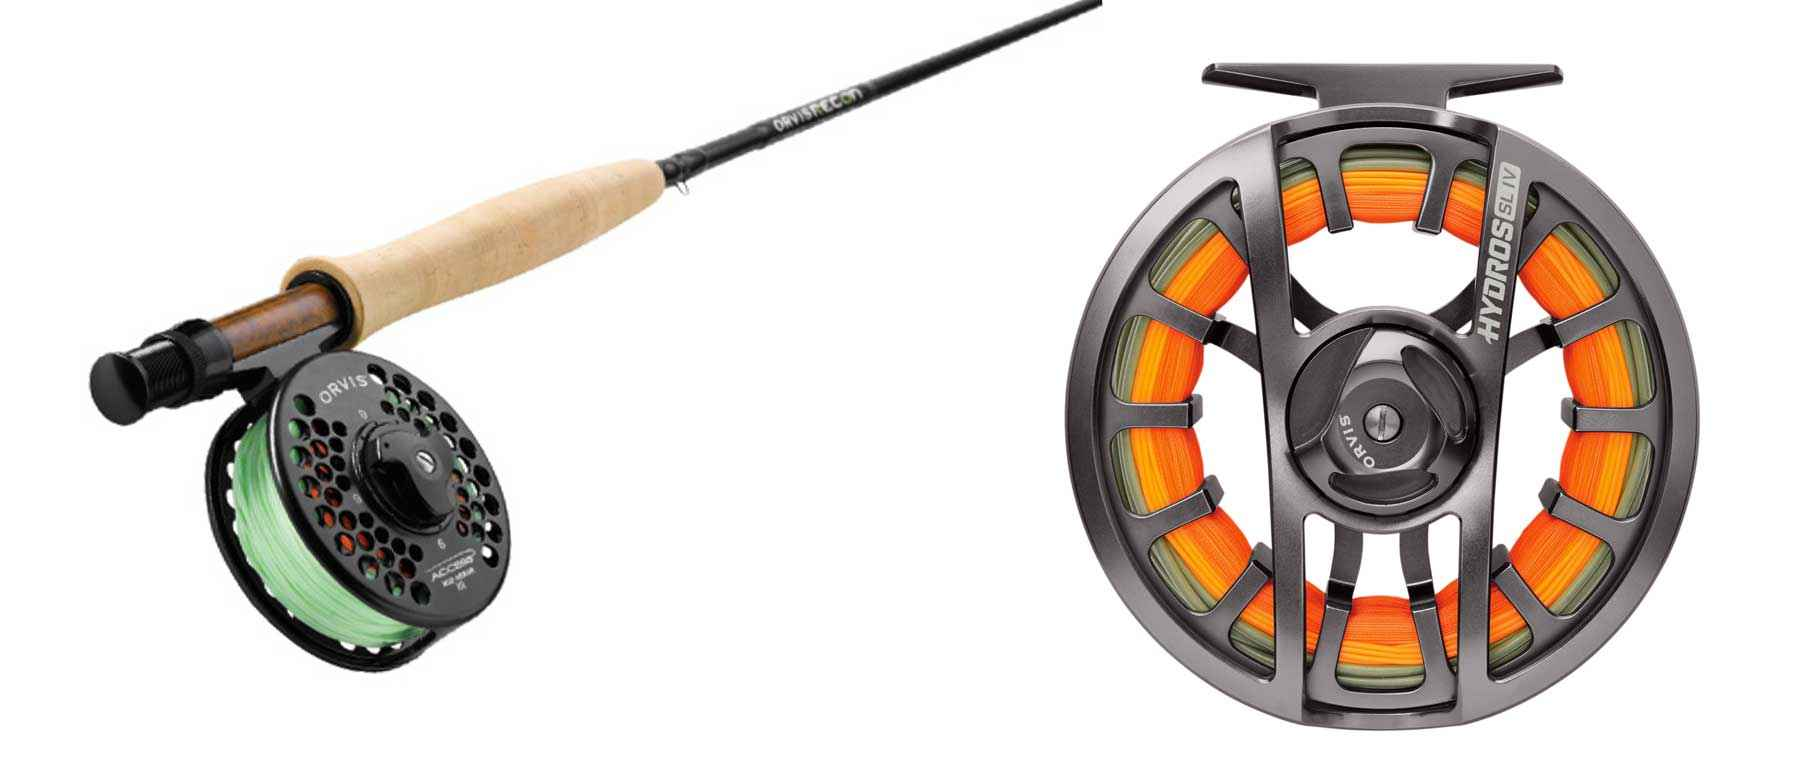 The Orvis Recon fly rod and Hydros SL reel.